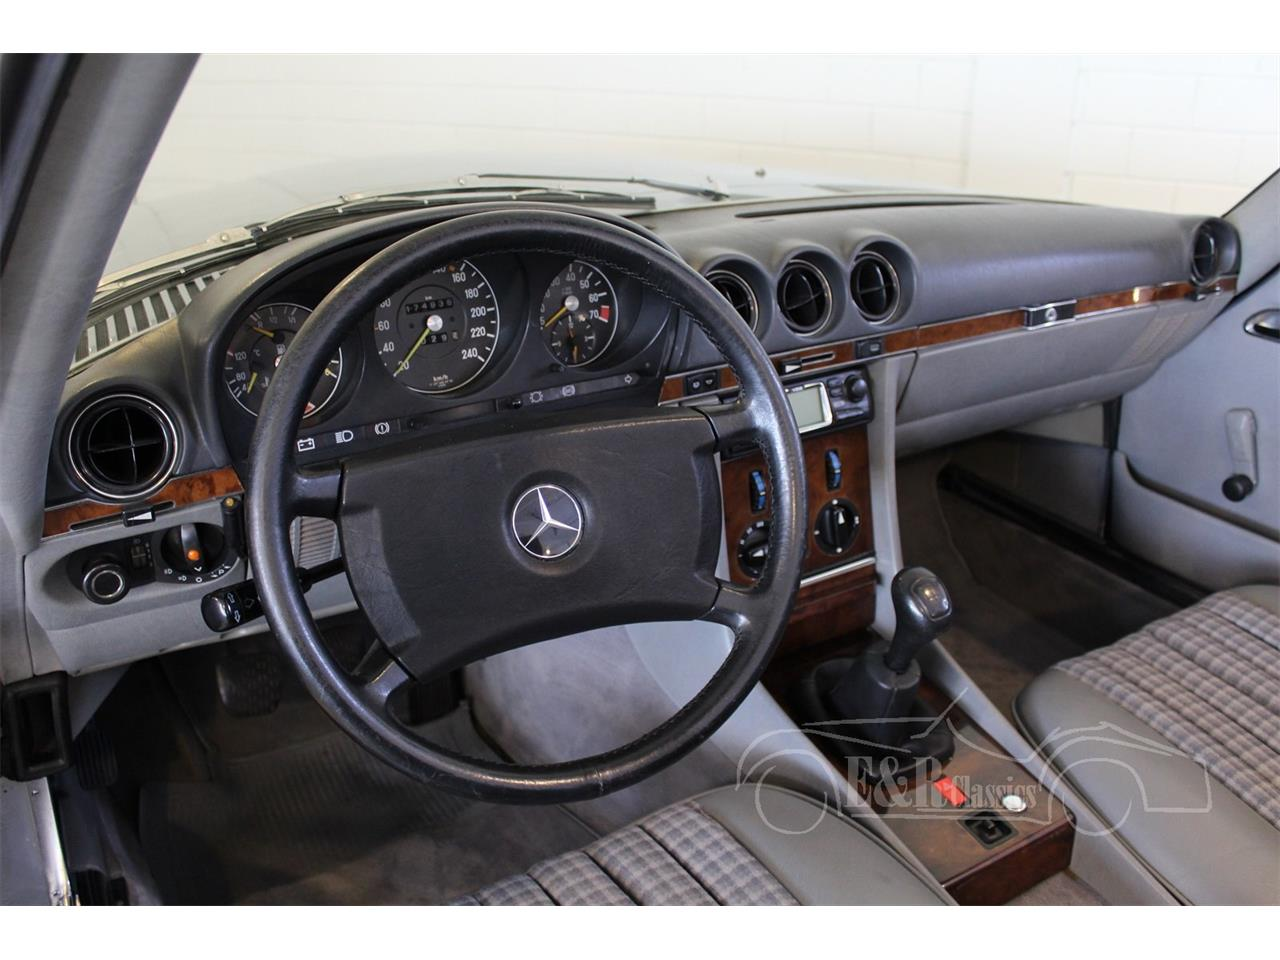 Large Picture of '83 Mercedes-Benz 280SL - $34,150.00 Offered by E & R Classics - QEBS